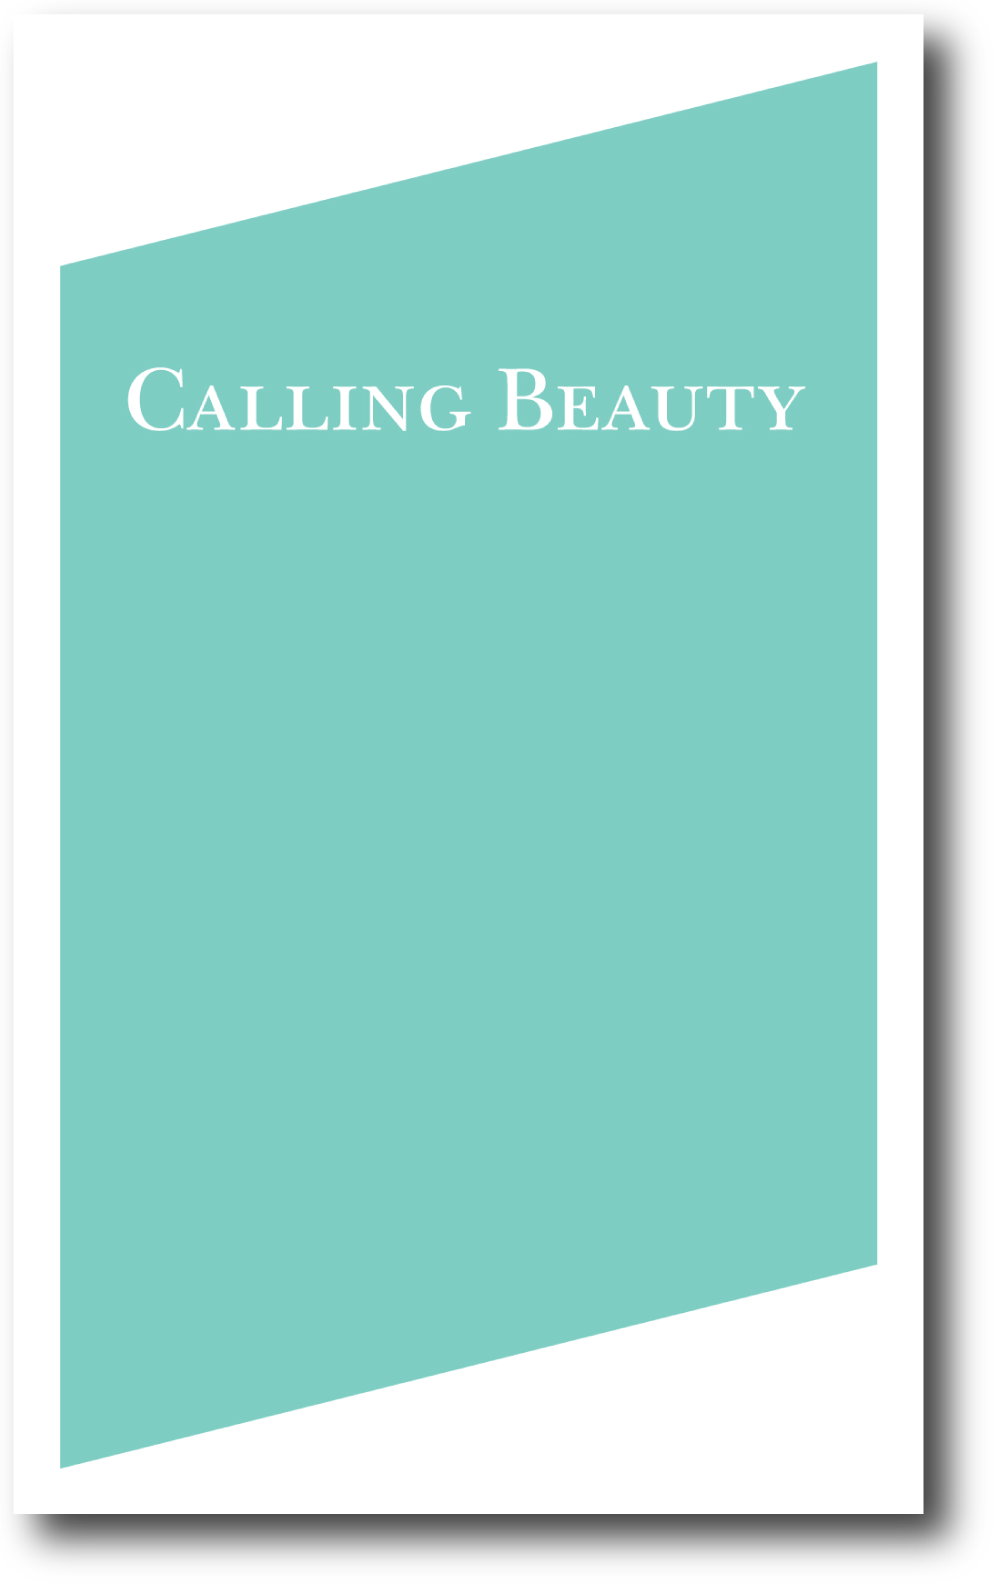 Calling Beauty , published by Bureau for Open Culture, 2010; designed by Nate Padavick,96 pages;8.25 x 5 inches